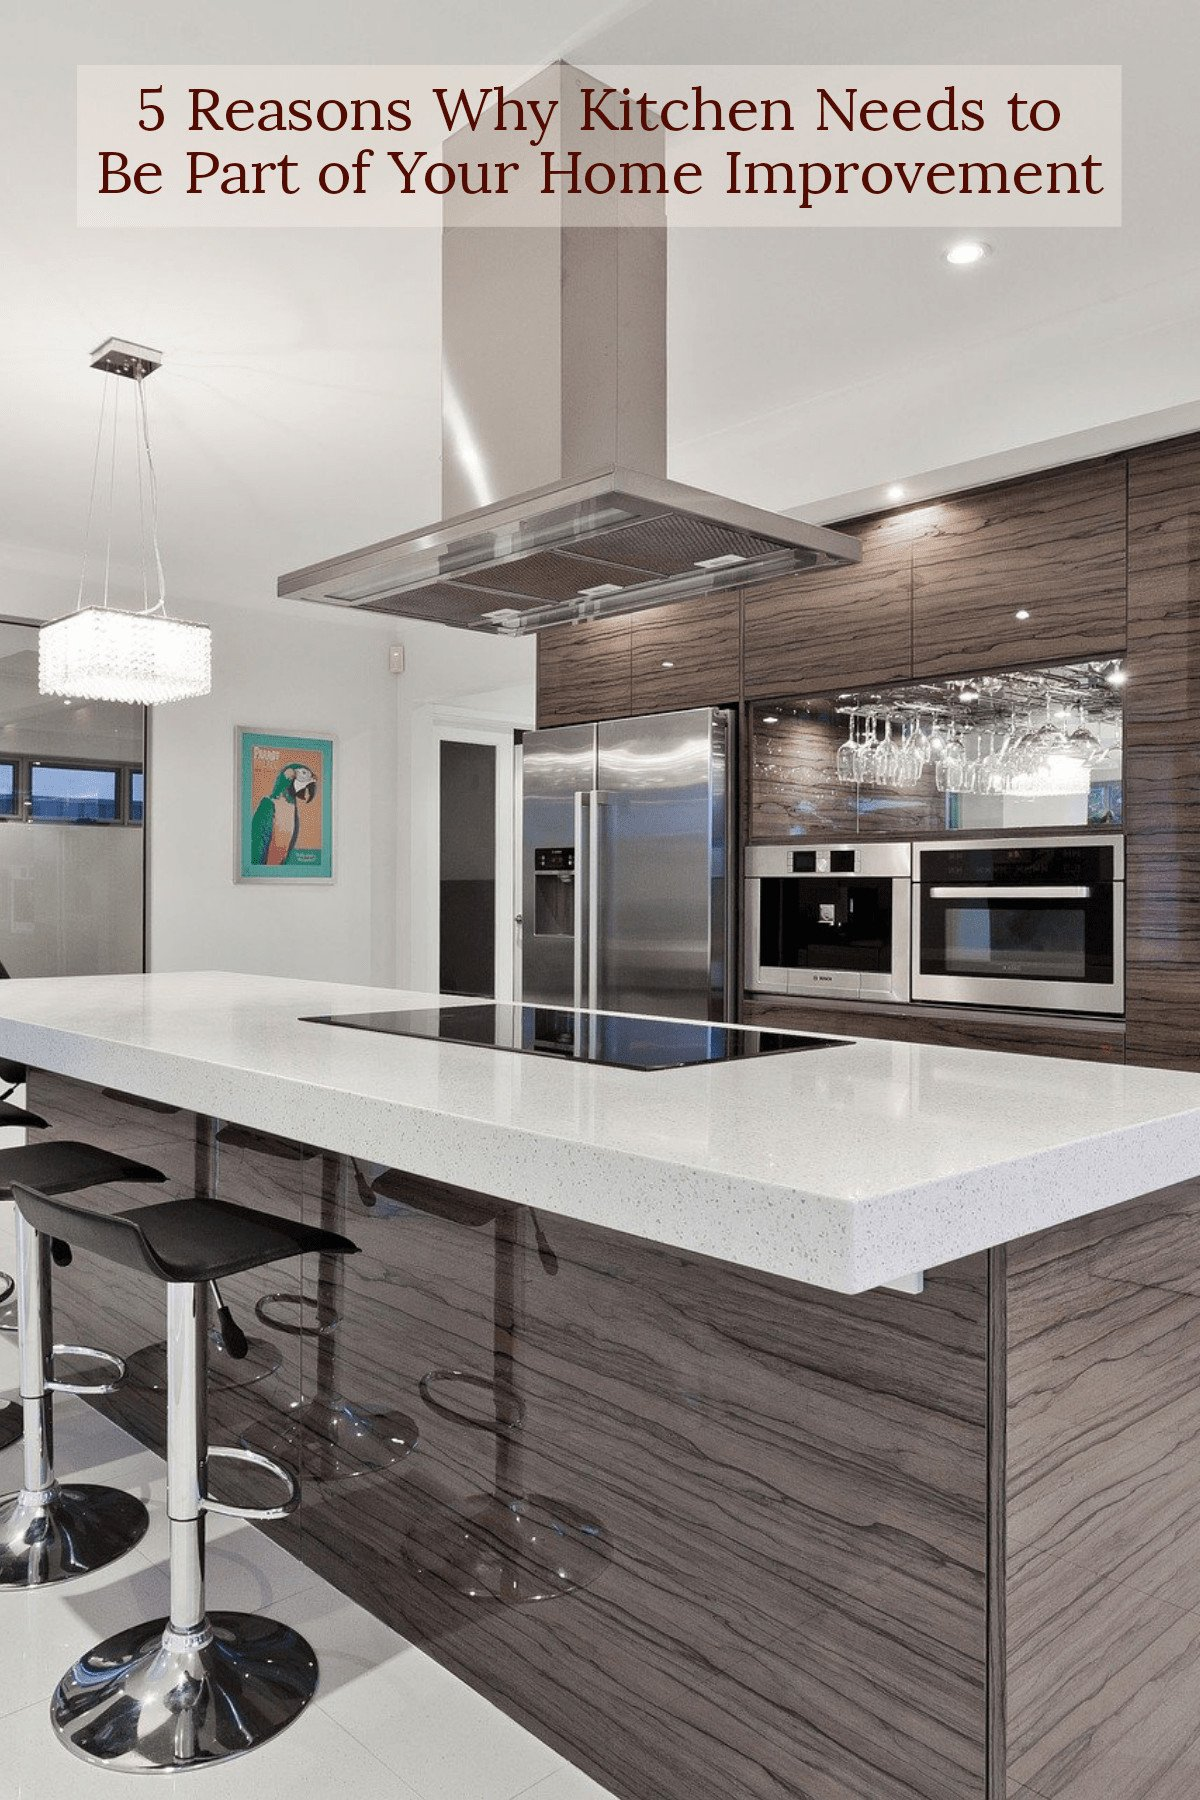 5 Reasons Why Kitchen Needs To Be Part Of Your Home Improvement